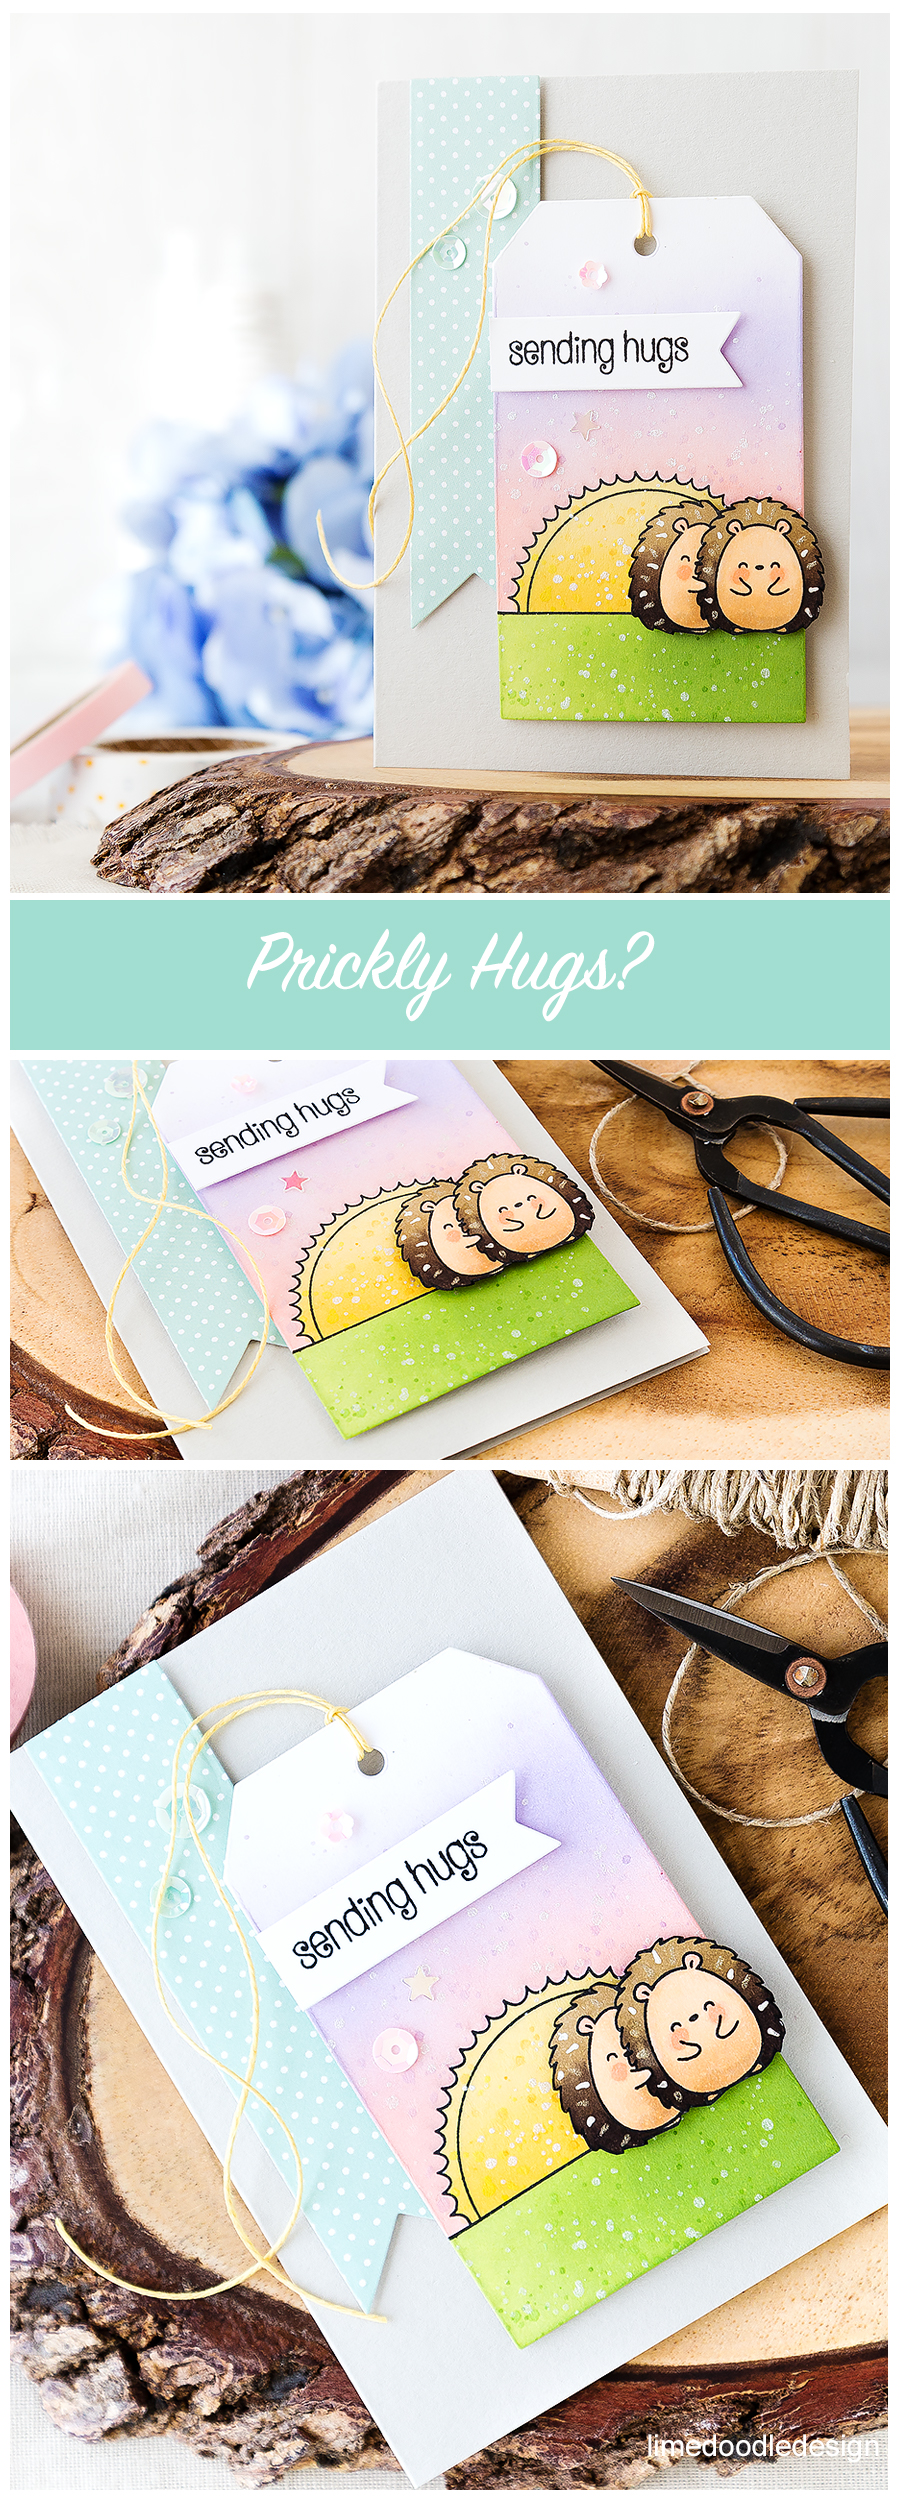 Do hedgehogs give prickly hugs? Sending hugs card - these cute Copic colored critters adorn a tag packed with ink blending and soft colors. Find out more by clicking on the following link: http://limedoodledesign.com/2016/07/hedgehogs-give-prickly-hugs-wonder/